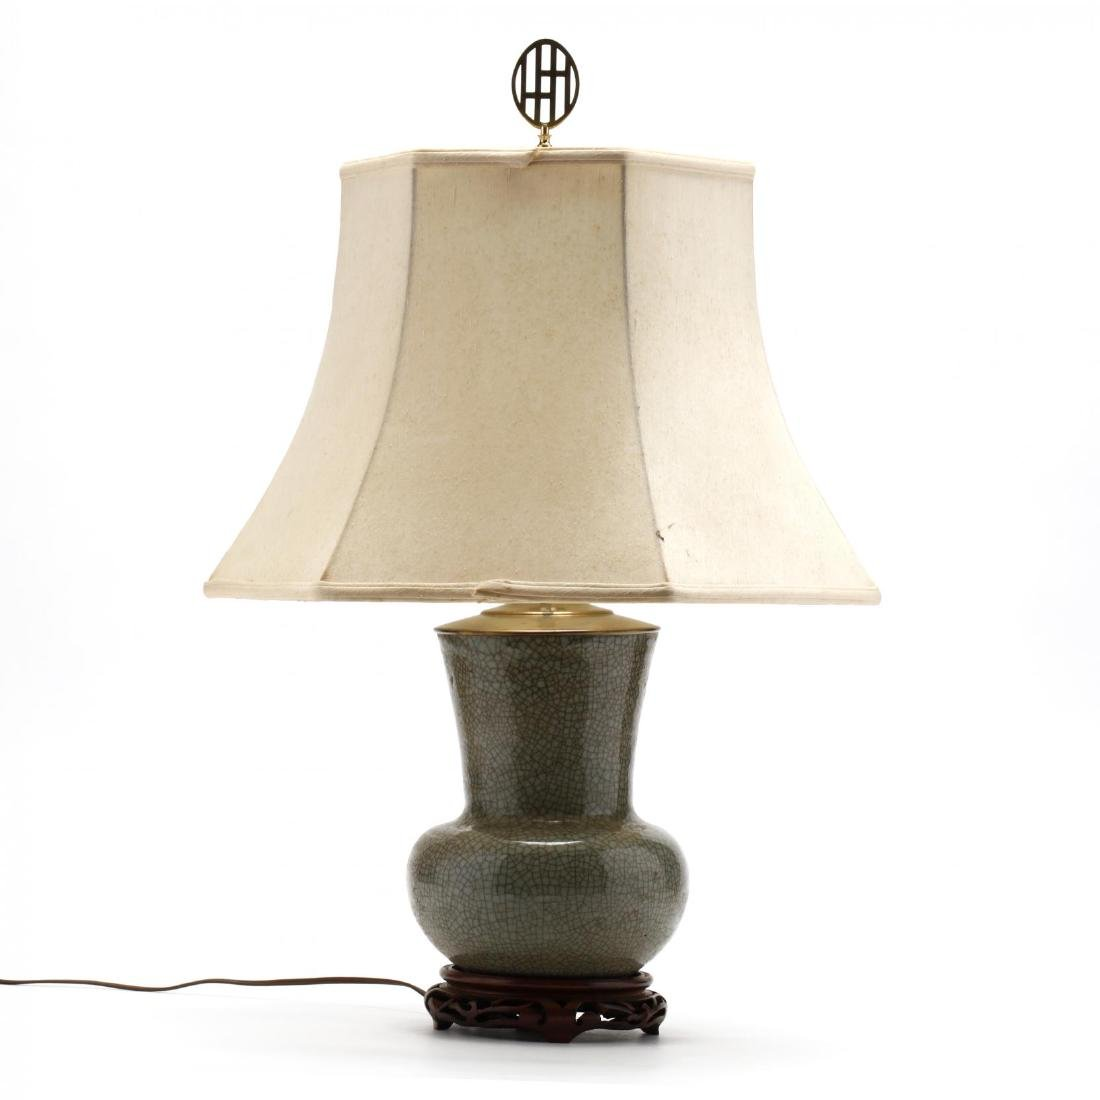 Antique Chinese Celadon Glazed Table Lamp - 2